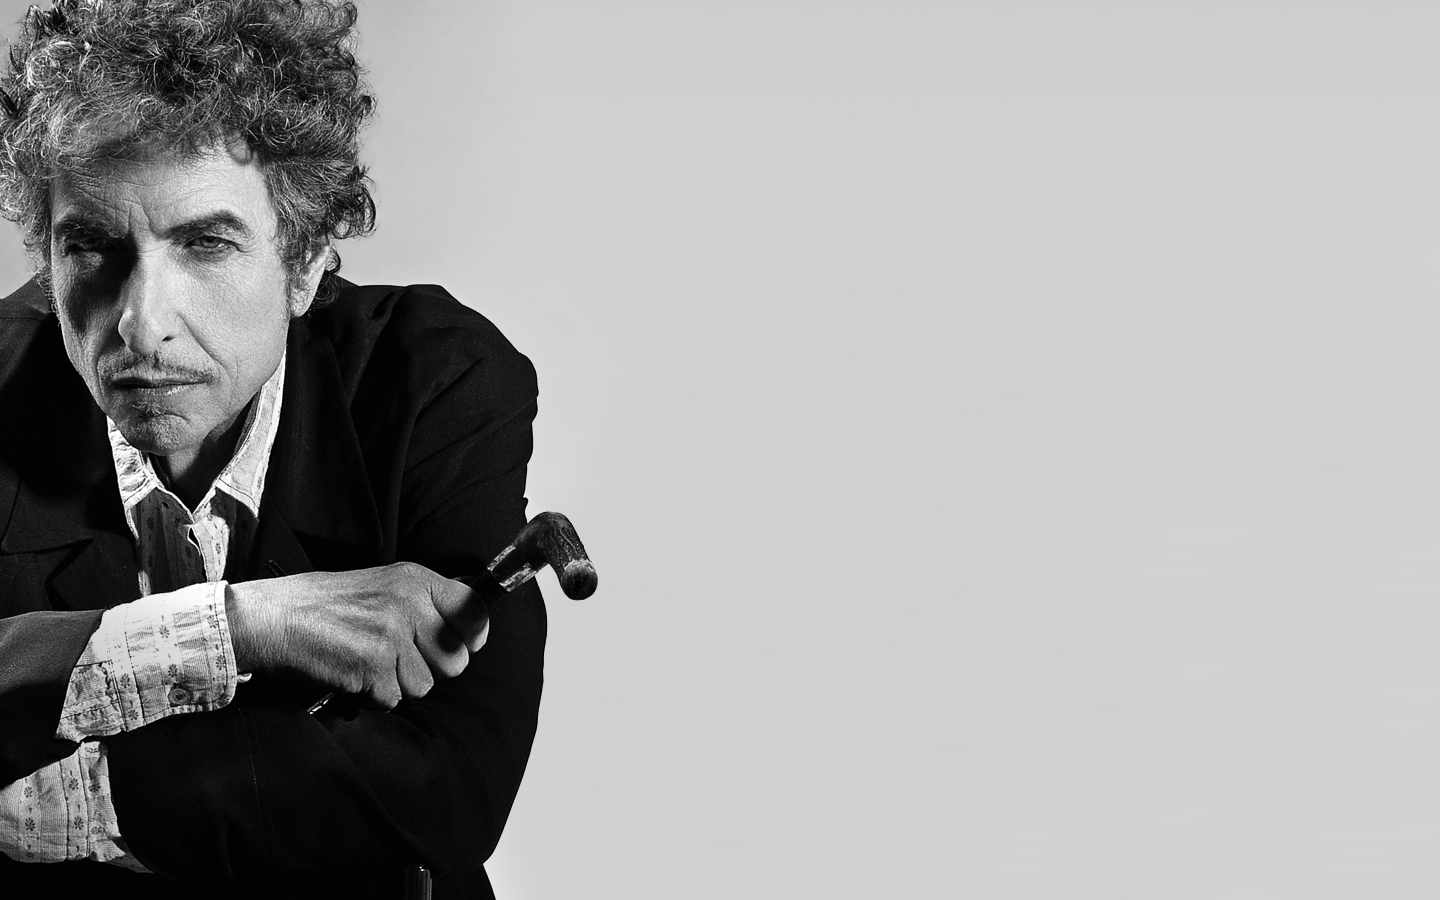 bob-dylan-hd-wallpapers-free-download-6-2.jpg (1440×900)